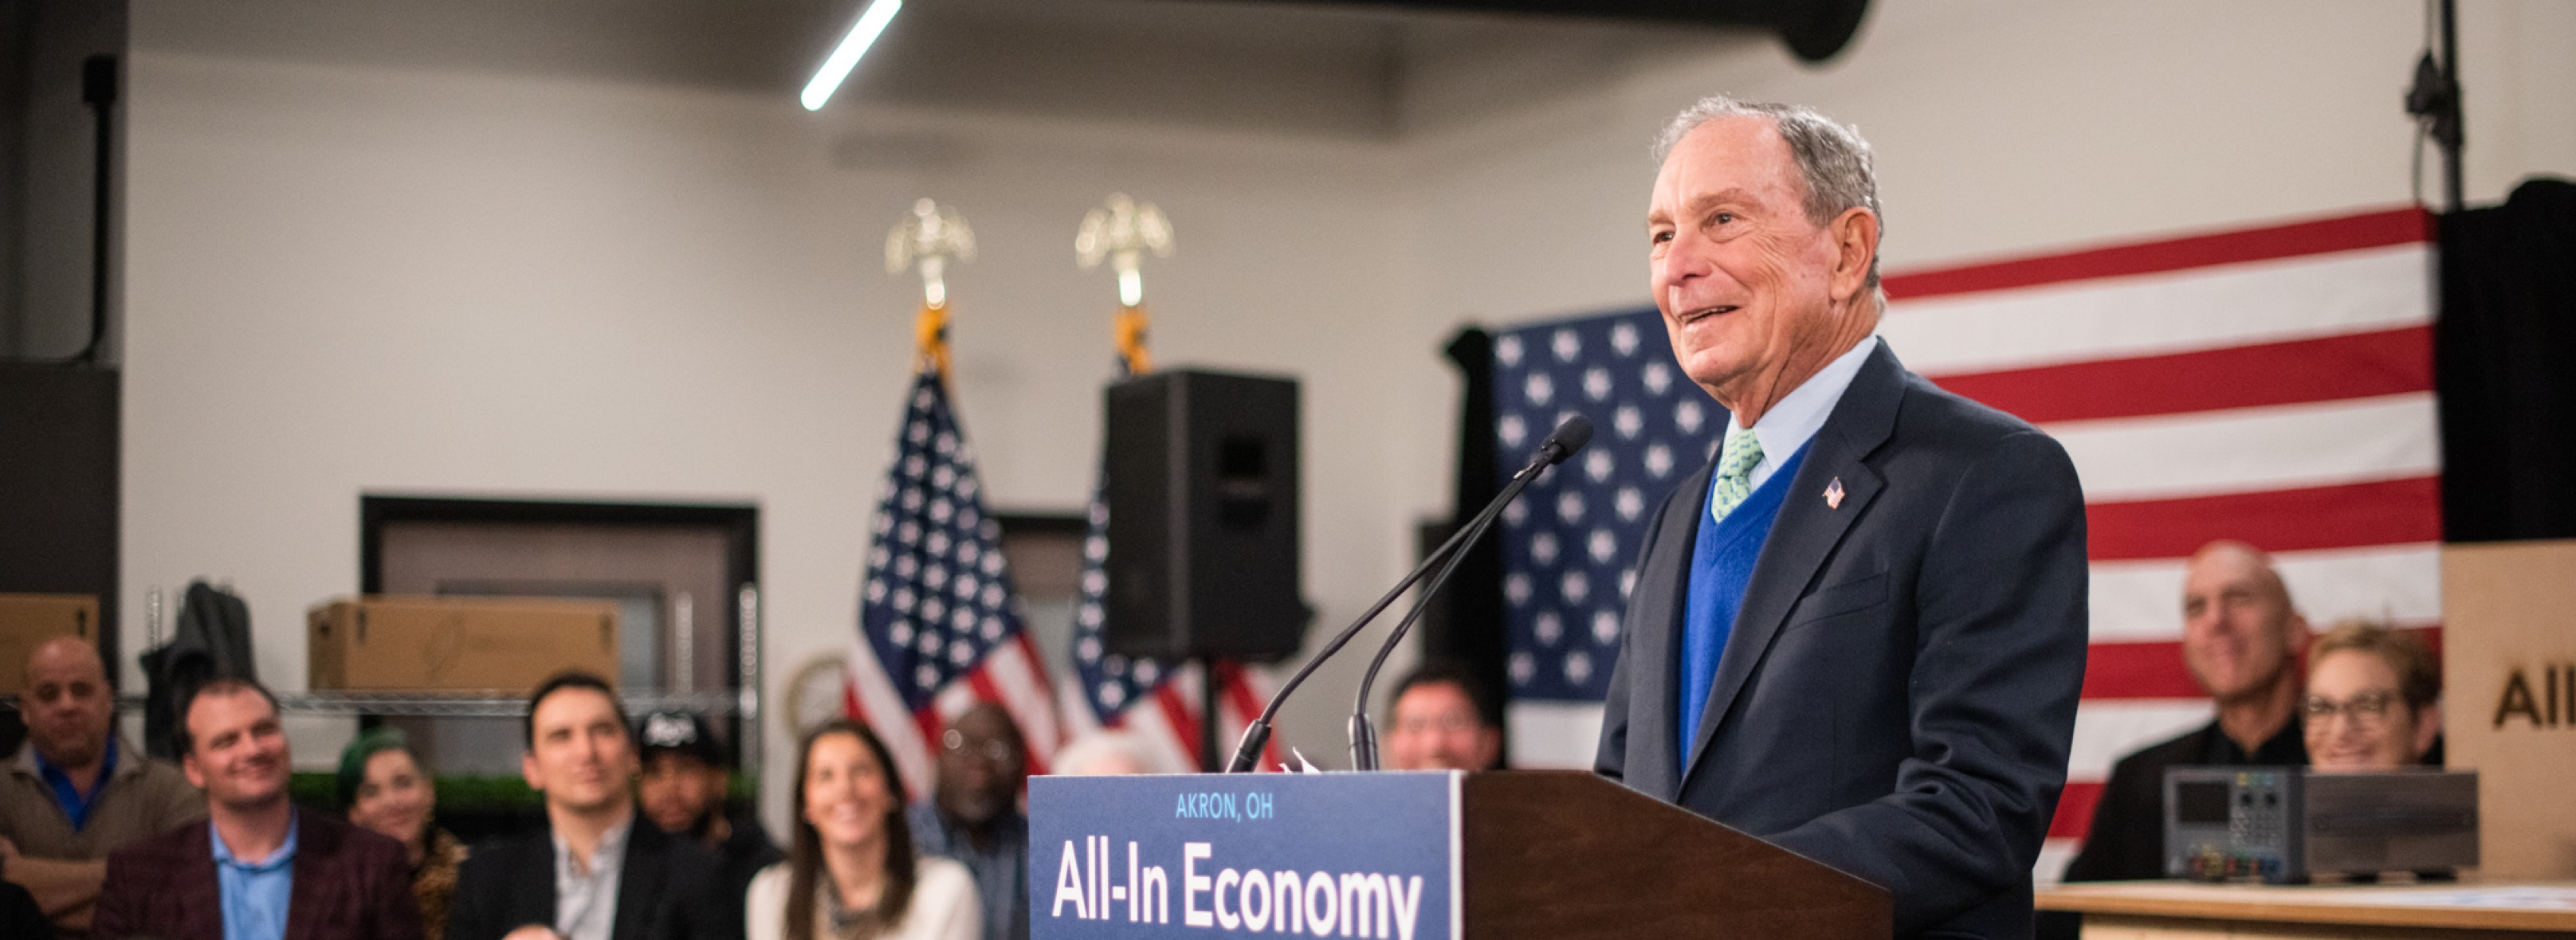 Mike Bloomberg attends an event with Mayor Daniel Horigan and Bounce Innovation Hub CEO Doug Weintraub in Akron, Ohio on January 8, 2020.